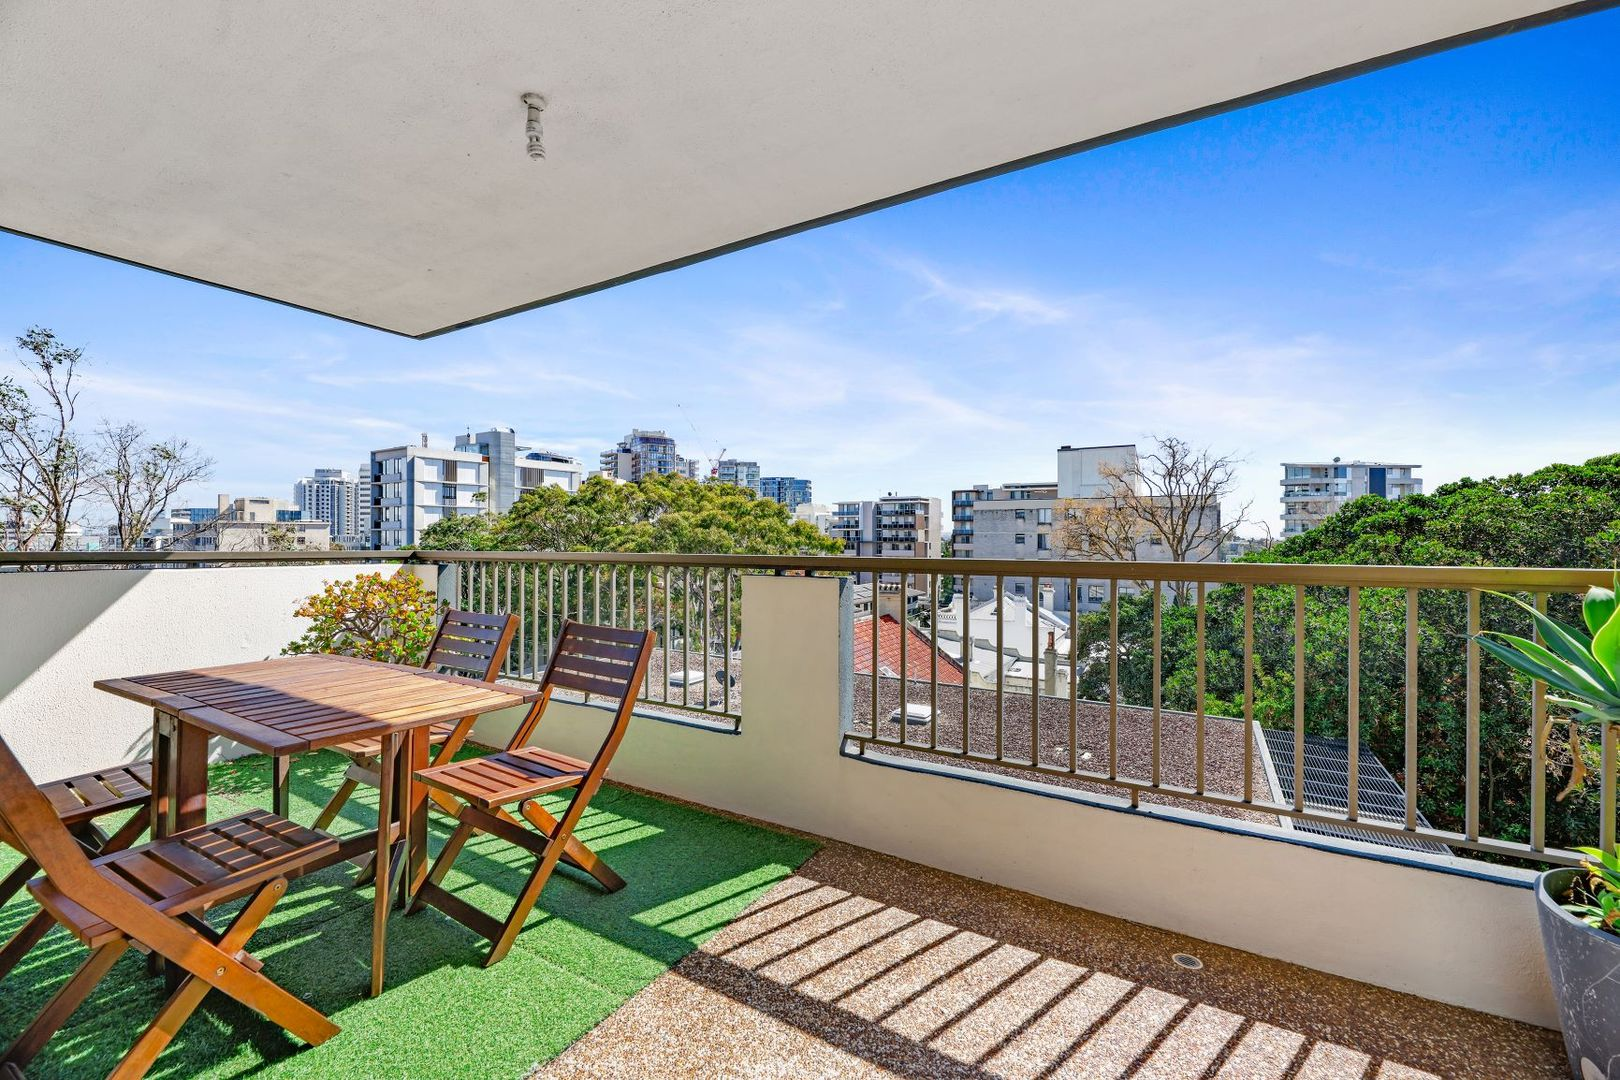 17/16-18 Botany Street, Bondi Junction NSW 2022 ...